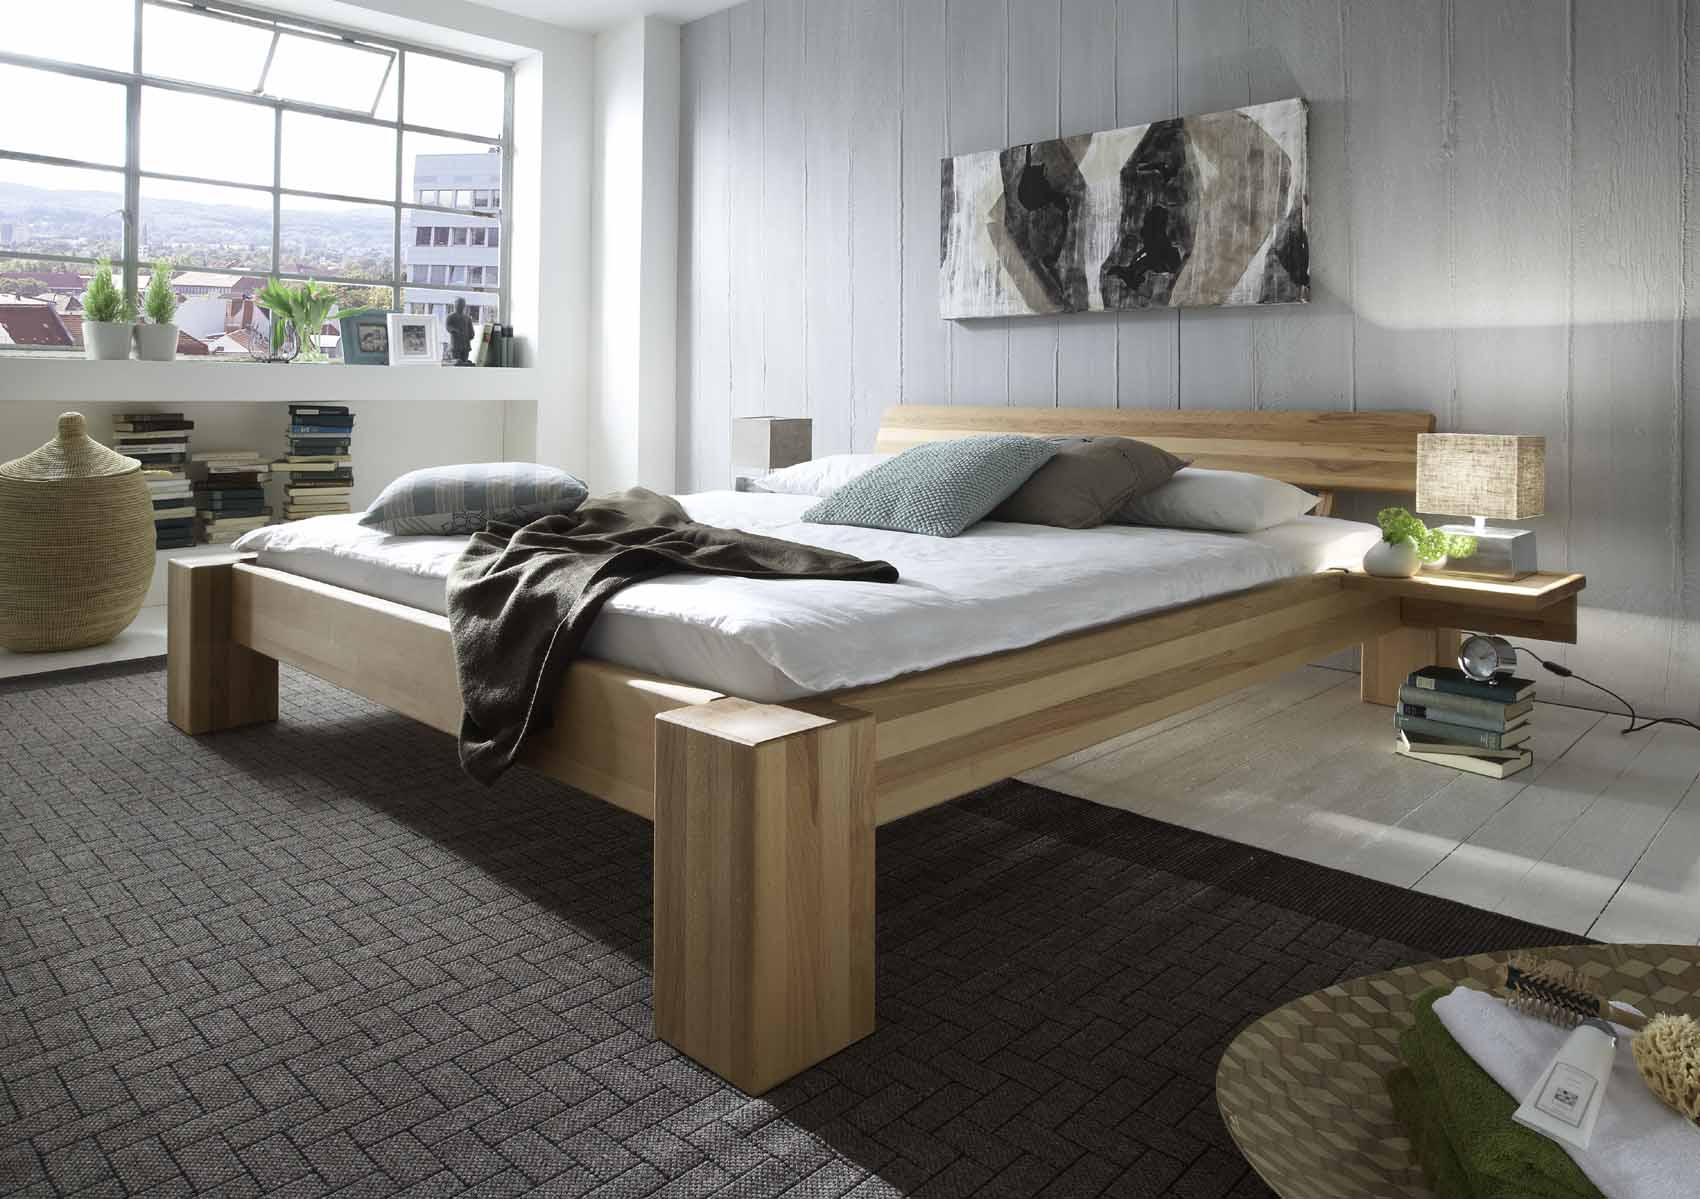 betten buche versandkostenfrei und g nstig online kaufen massiva m. Black Bedroom Furniture Sets. Home Design Ideas